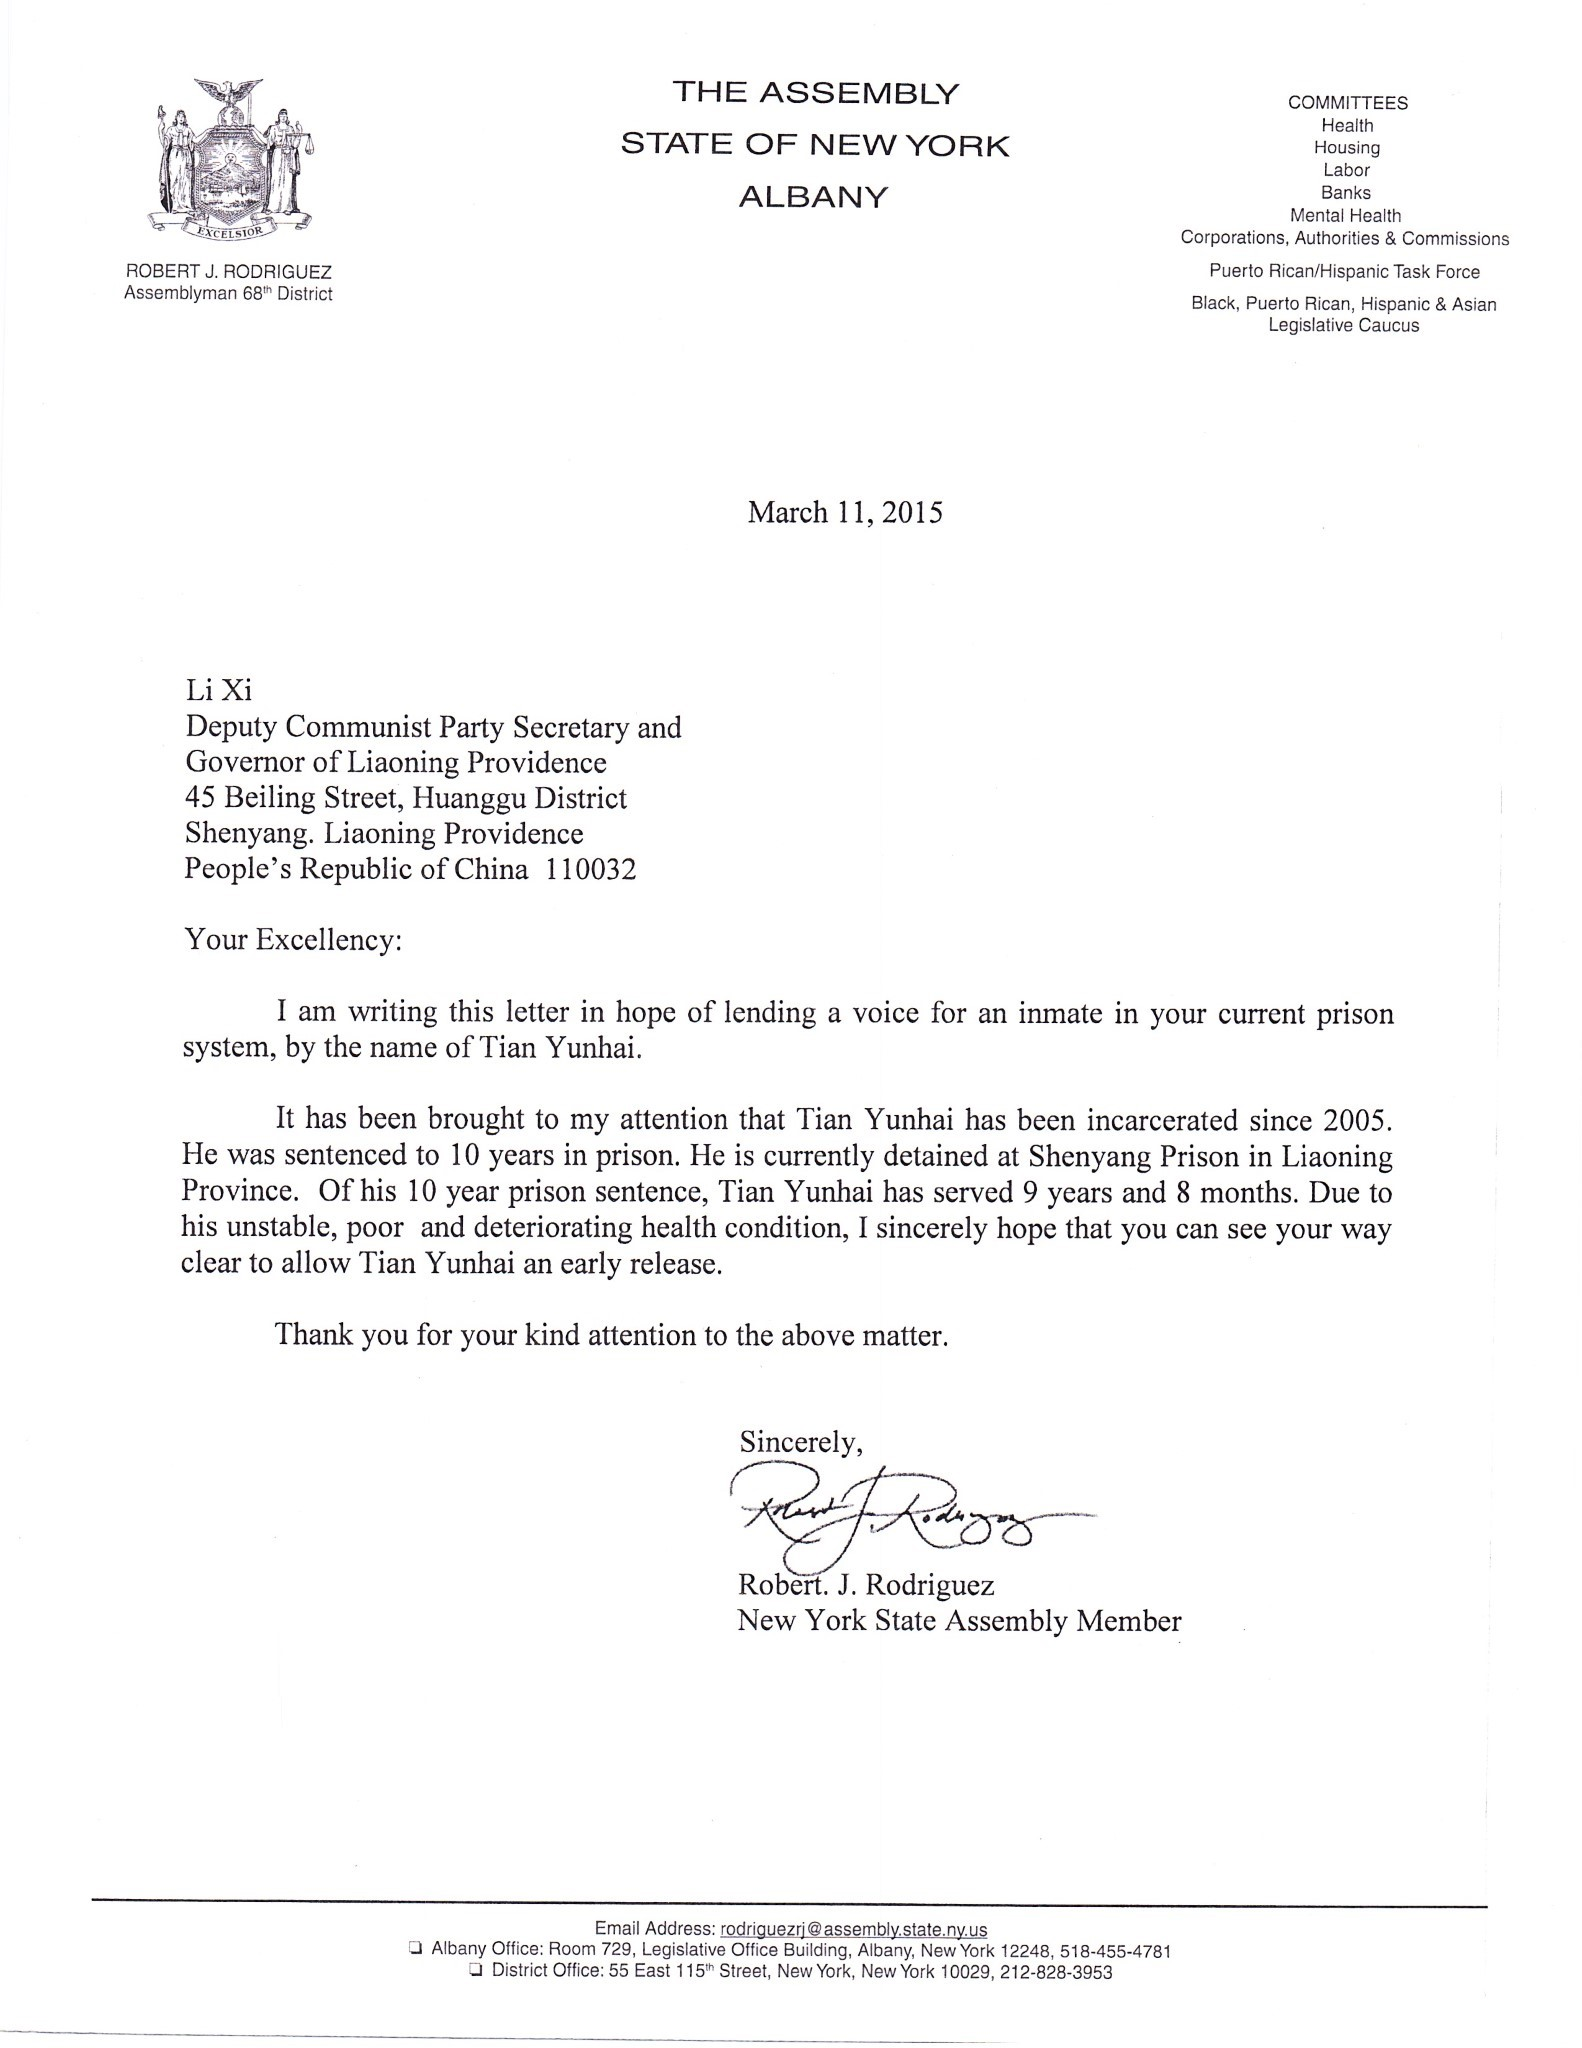 Letter From Assemblyman Robert J Rodriguez To Li Xi  Friends Of